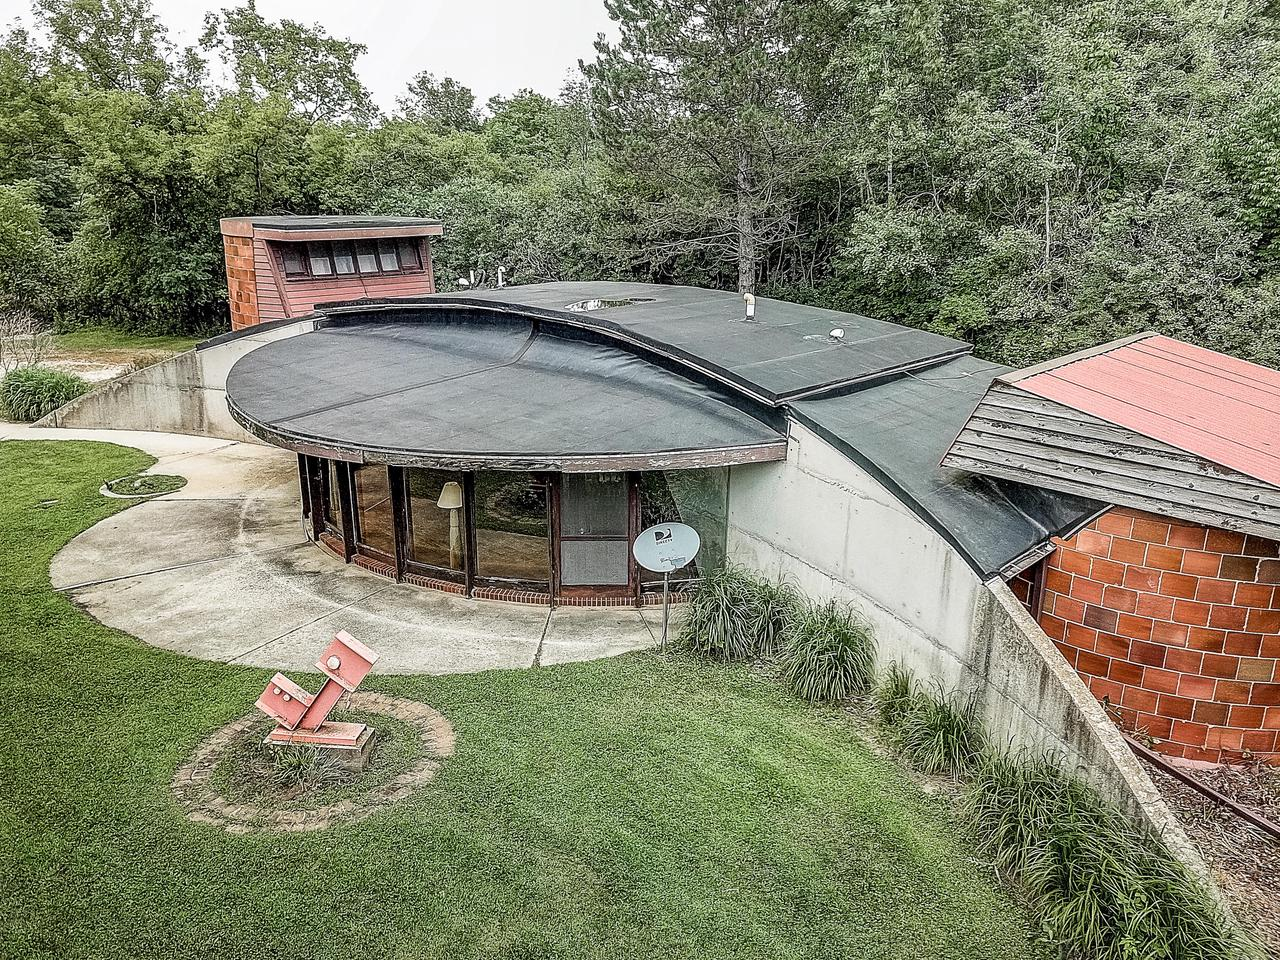 This one of a kind expressionist modern style home was custom built in 1969. The curved lines throughout the home harmonize a space that is fully open concept, yet still provides individual space. Enjoy the scenic/private views of the outdoors from the curved wall of windows in the living/dining room. Each end of the home has a circular shaped bedroom that the exterior walls are constructed with large bricks originated from a concrete silo in norther Wisconsin. Ladder in master bedroom connects to home office. Improvements in this home include Water Well pump (18), furnace & H2O heater (16), C/A (12). The property rests on over 4 acres (vacant lot next door with 2.11 acres, could be purchased together for additional $98,000: Lt. 2 Sconfinato Dr). Home being sold as-is condition.